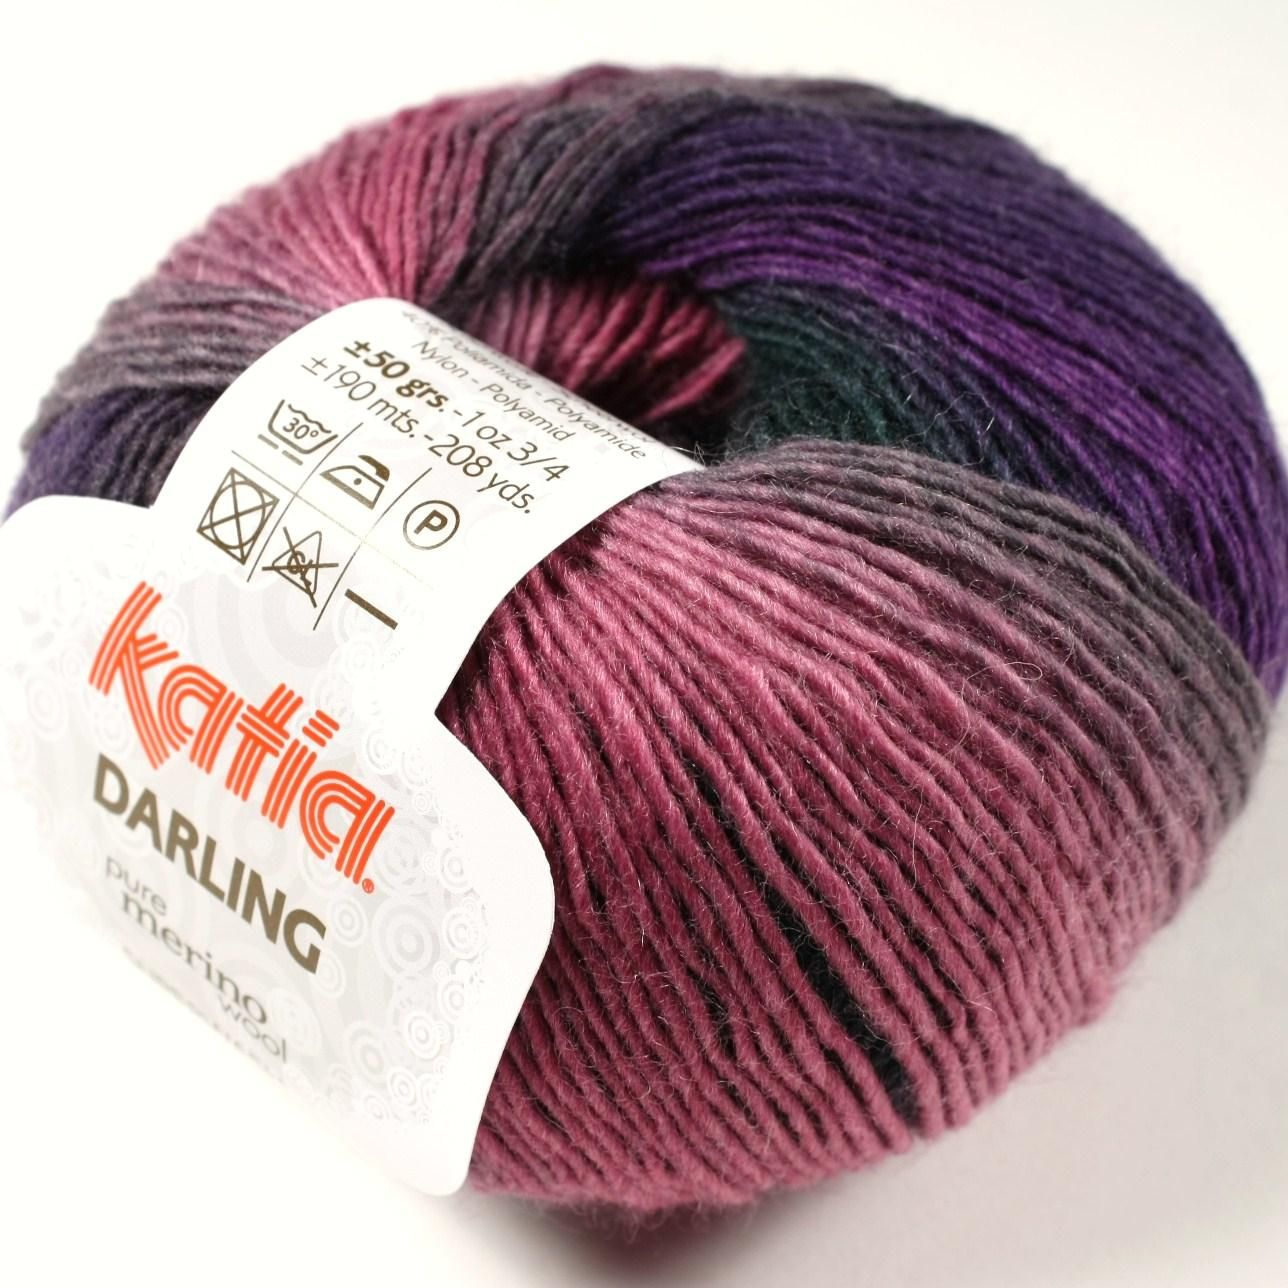 "Katia Darling yarn. Merino, nylon. ""Katia Darling knitting yarn is a beautiful nylon and merino wool blend brightly coloured striped ball of soft and squishy lovelyness! Perfect for socks for all the family, and lovely toys for girls and boys. With it's wonderfully soft blend you can easily crochet or knit up scarves and hats in big bright vivid colours."""